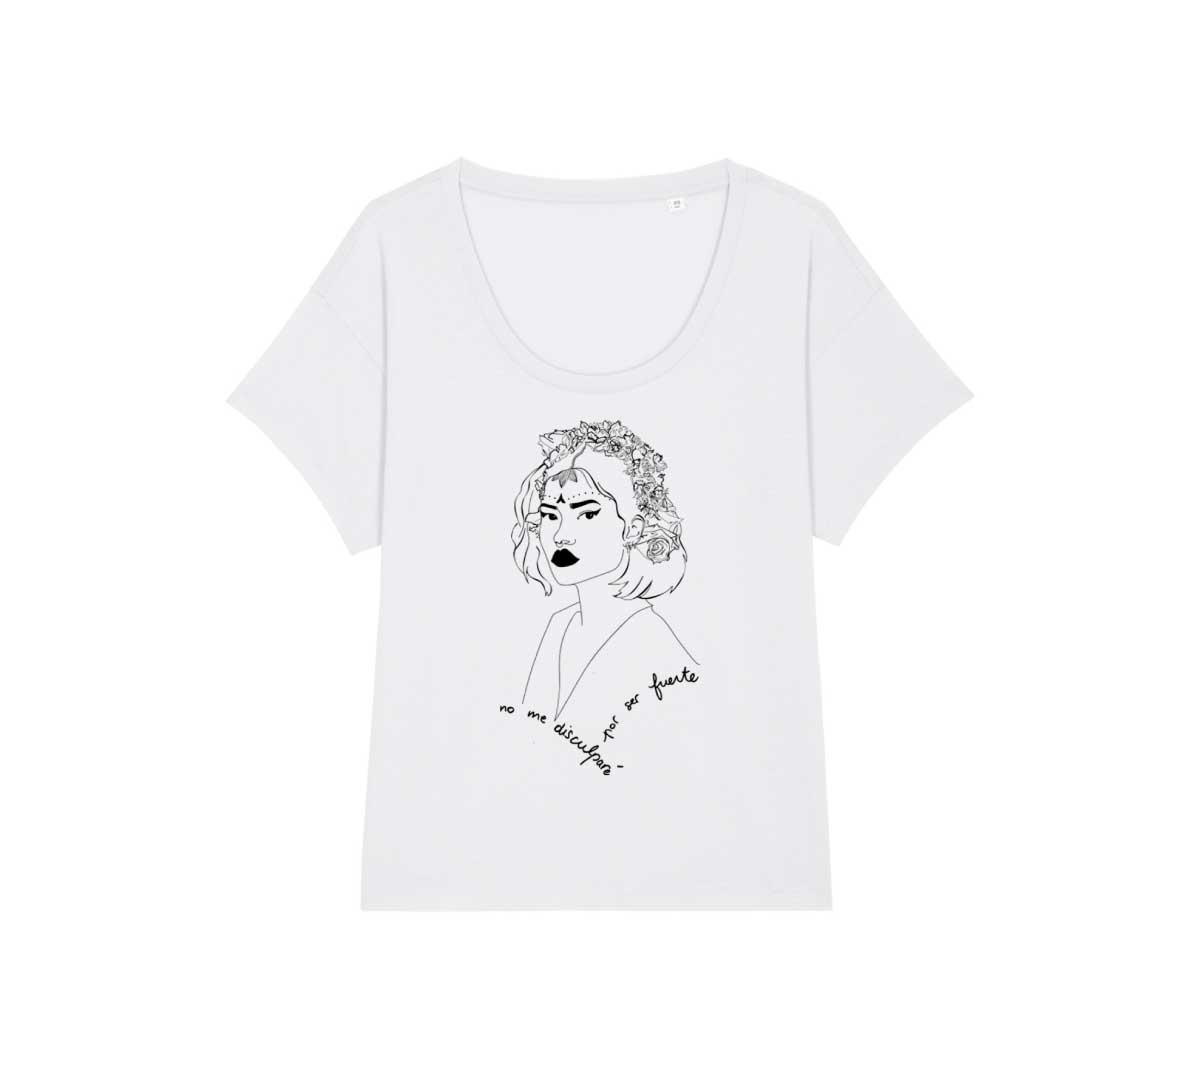 mock up t-shirt loose blanc lupita collection reinas